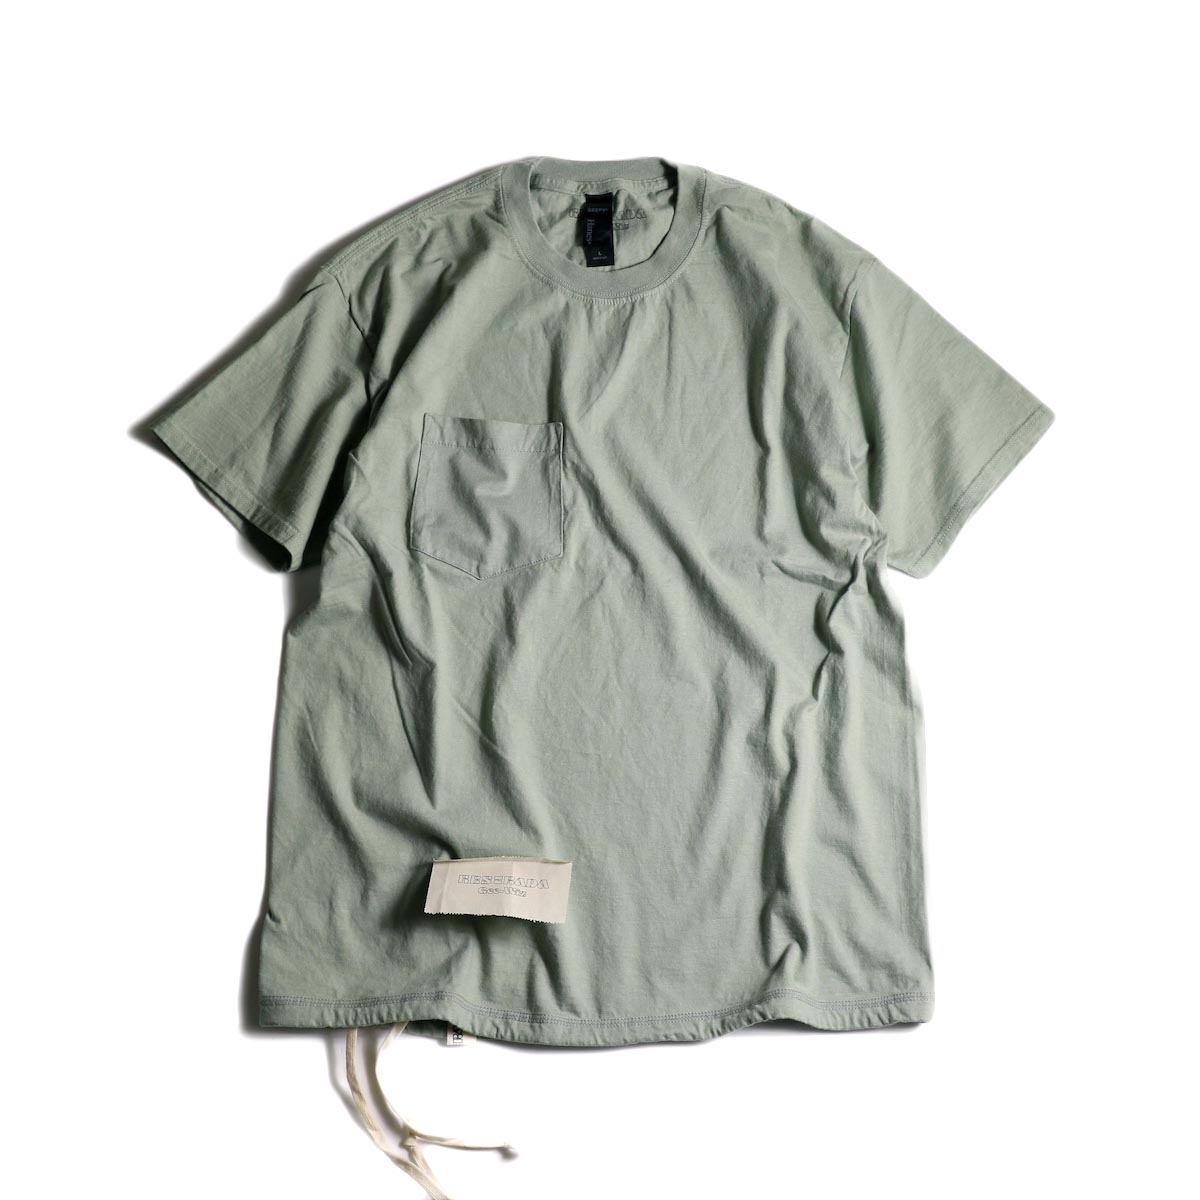 HESTRADA GEE-WIZ / SWITCH S/S Tee (Stone Green)正面